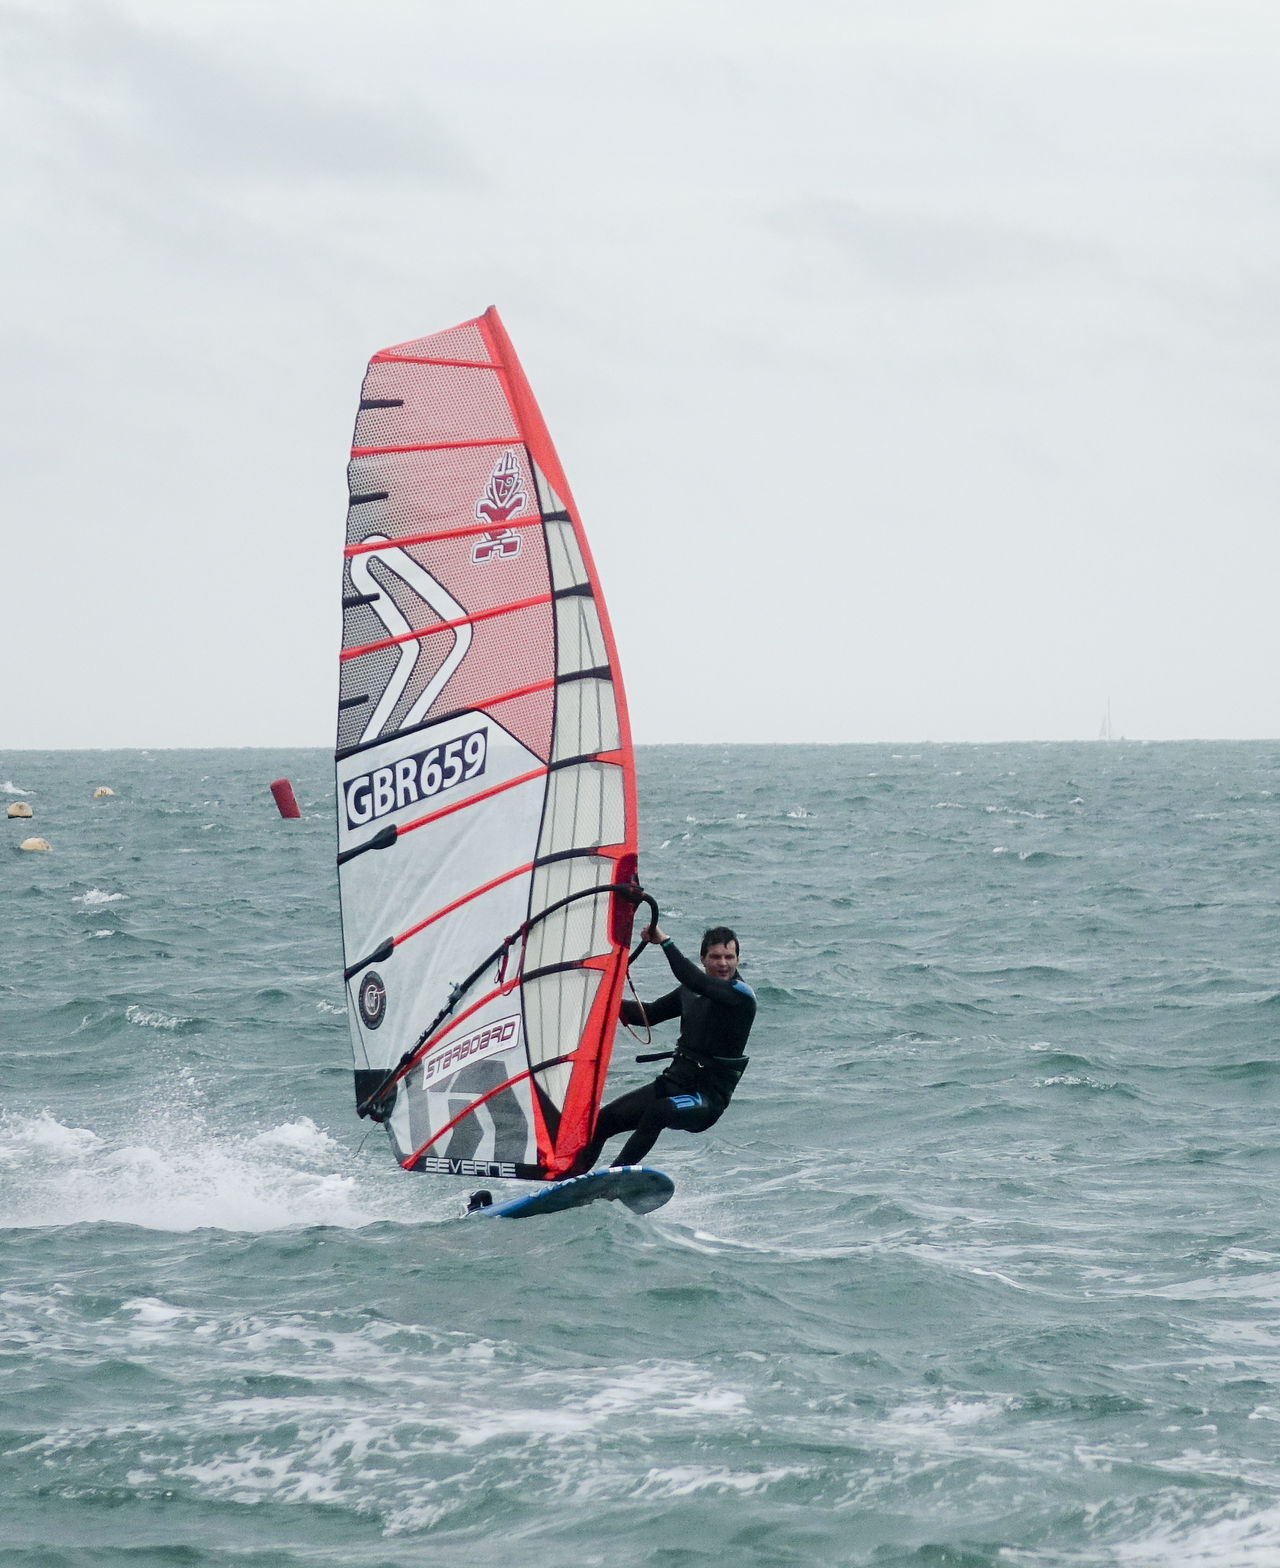 Hayling Island, UK. 3rd September 2016. Windsurfers competing in the National Watersports Festival. Low pressure conditions provided strong winds for this annual event. England England🇬🇧 Fleet Hampshire  Hants Hayling Island  National Watersports Festival Nwf Race Windsurf Windsurf Competition Windsurf Life Windsurfen Windsurfer Windsurfers Windsurfing